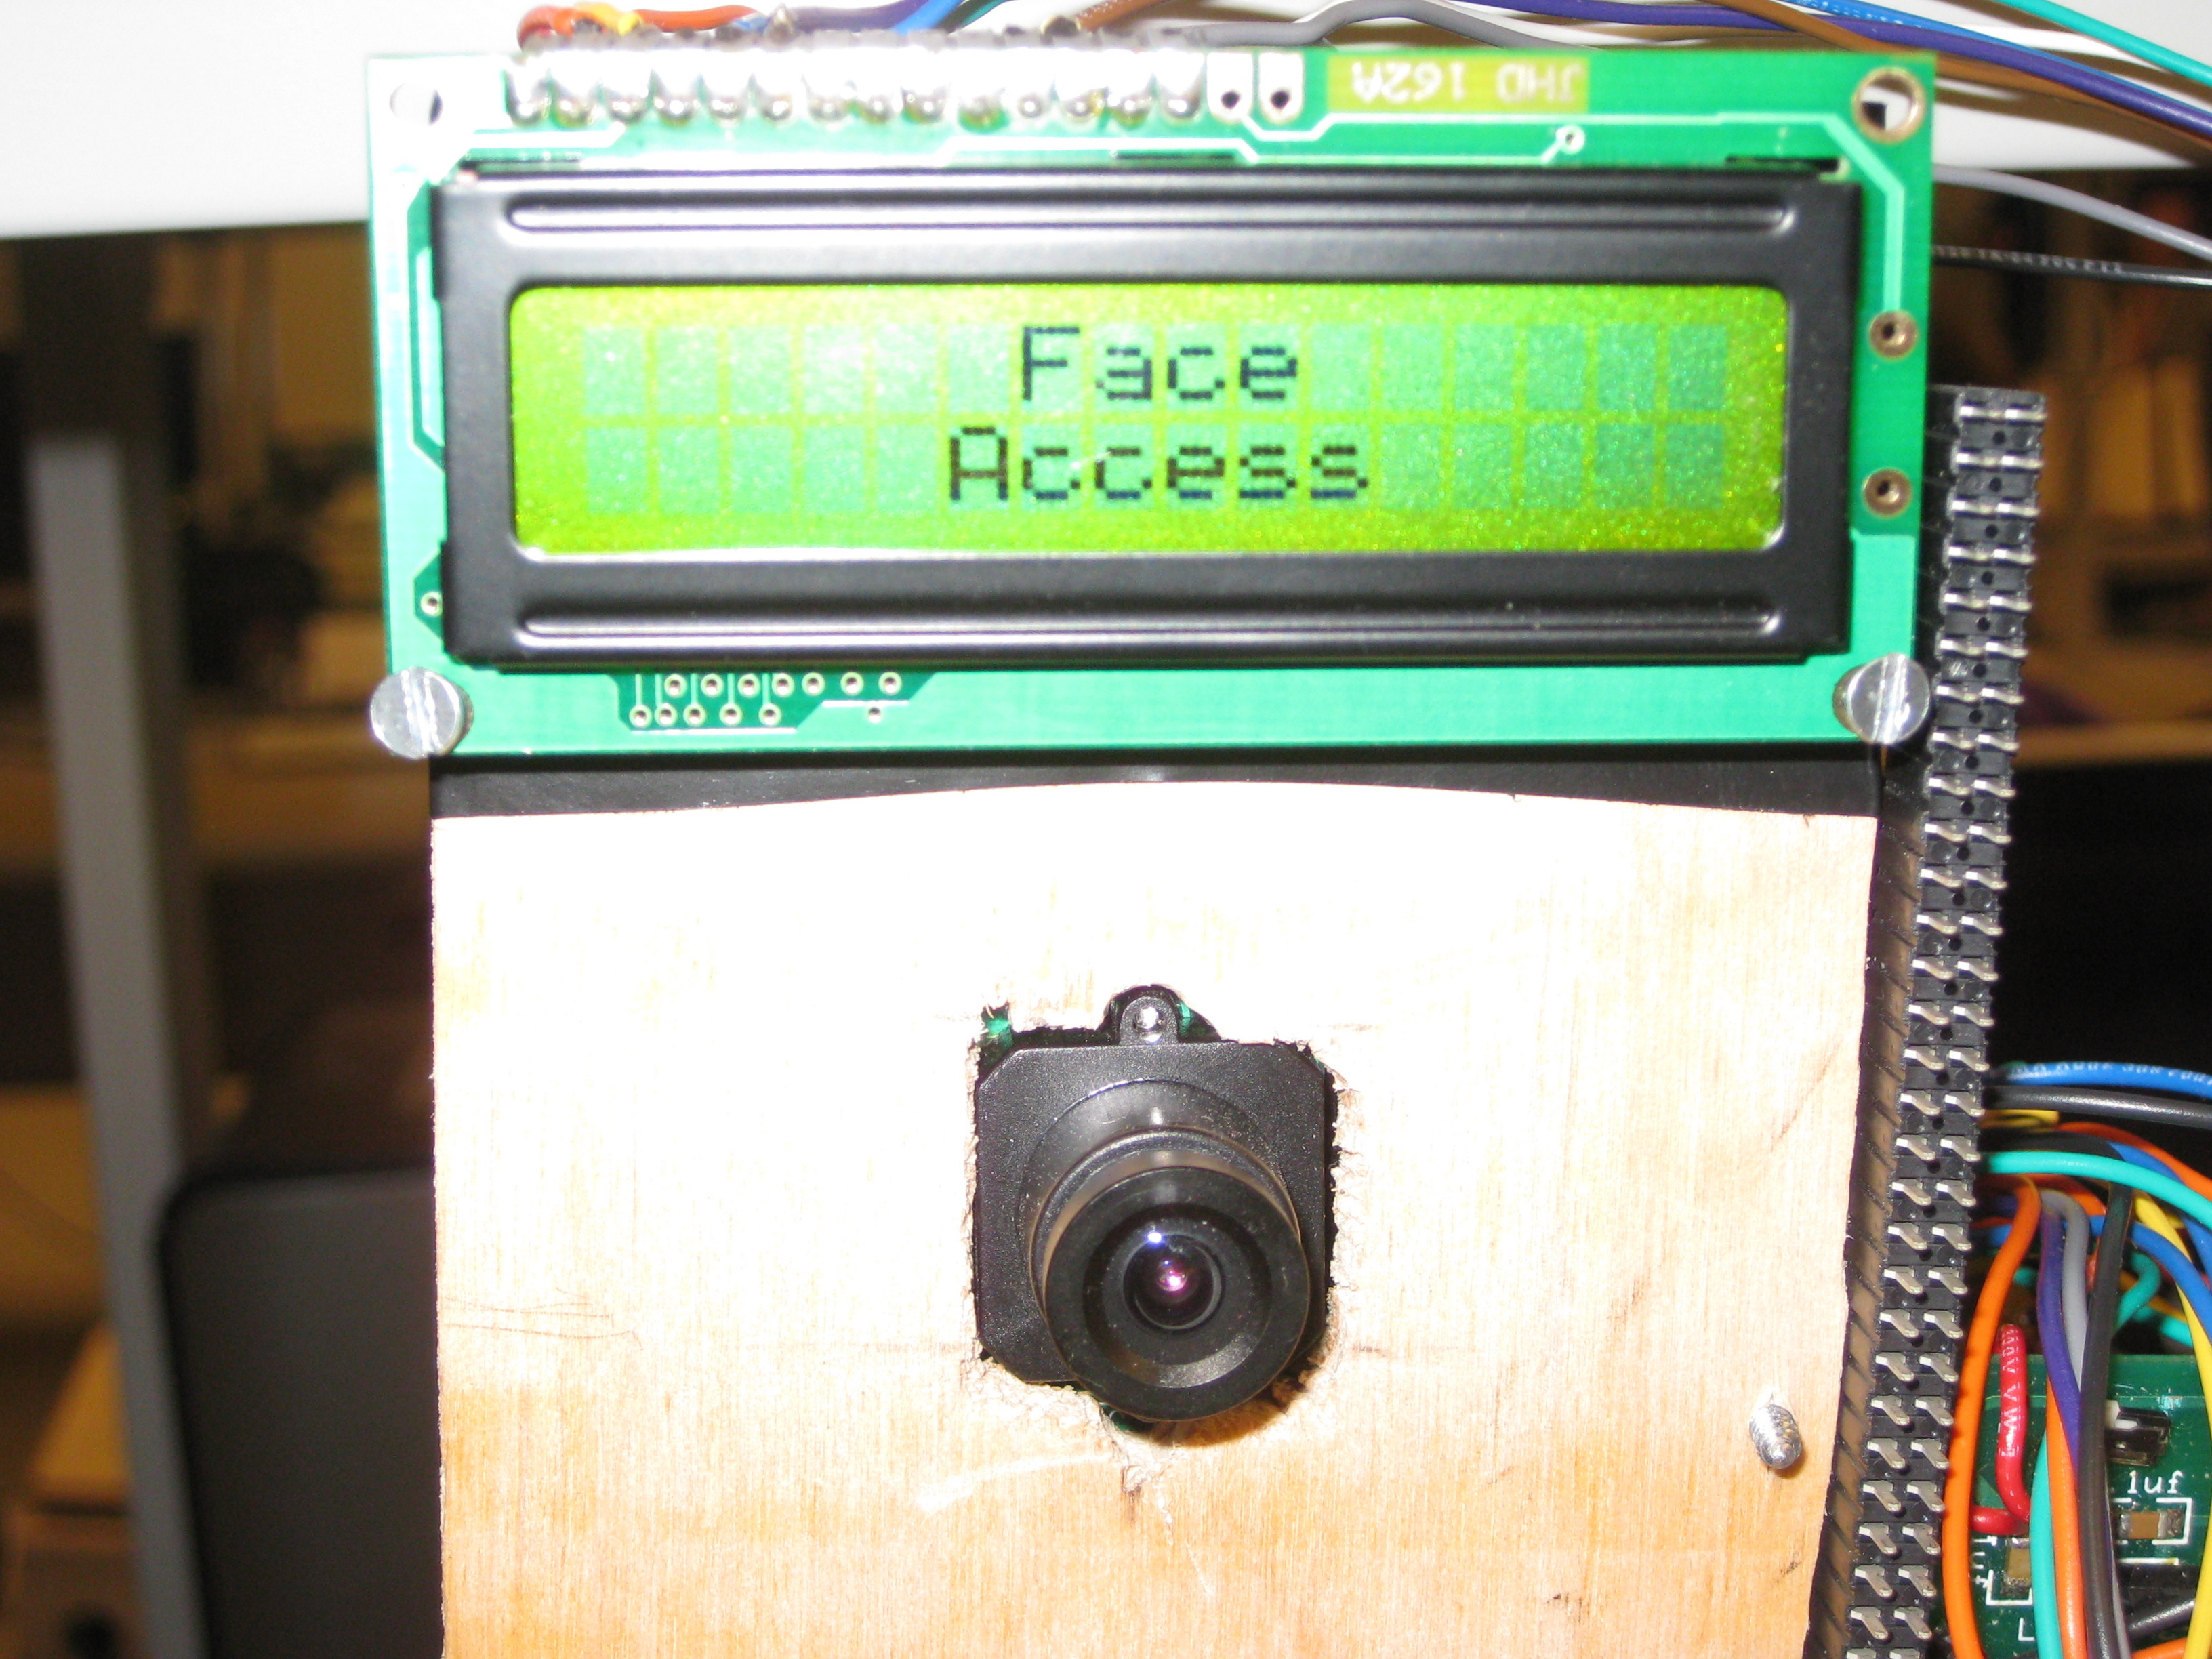 Faceaccess